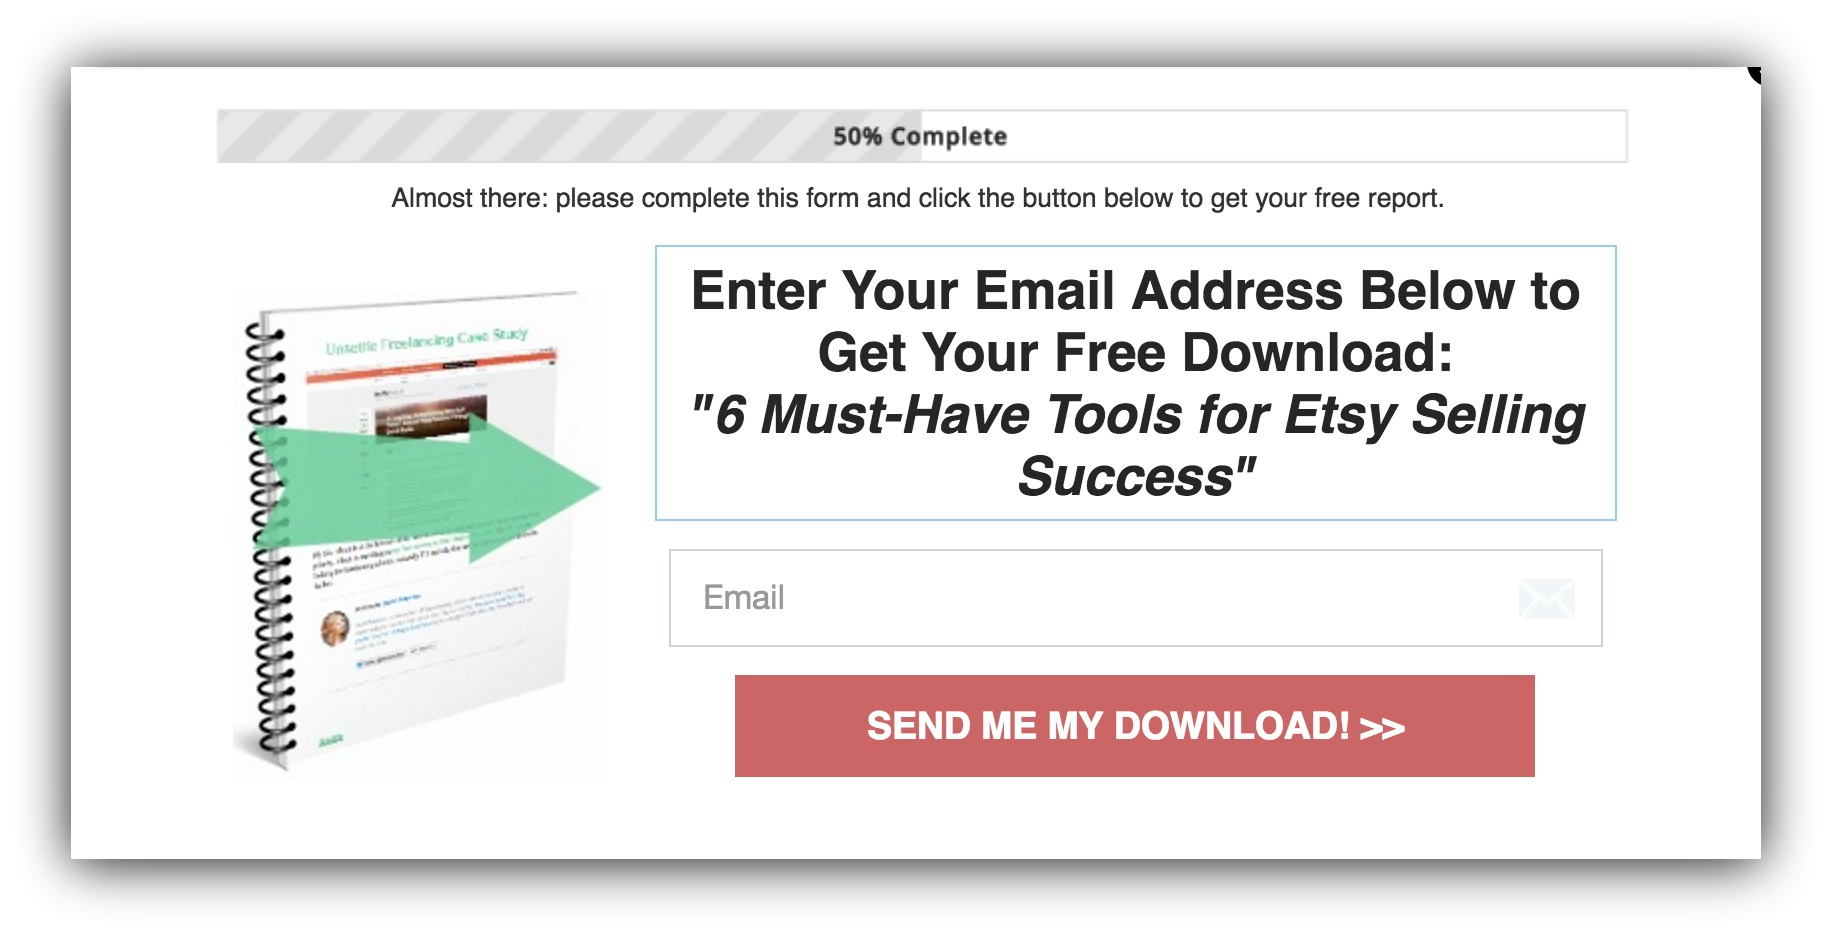 34 Conversion Rate Optimization Tips To Blow Up Your Email List